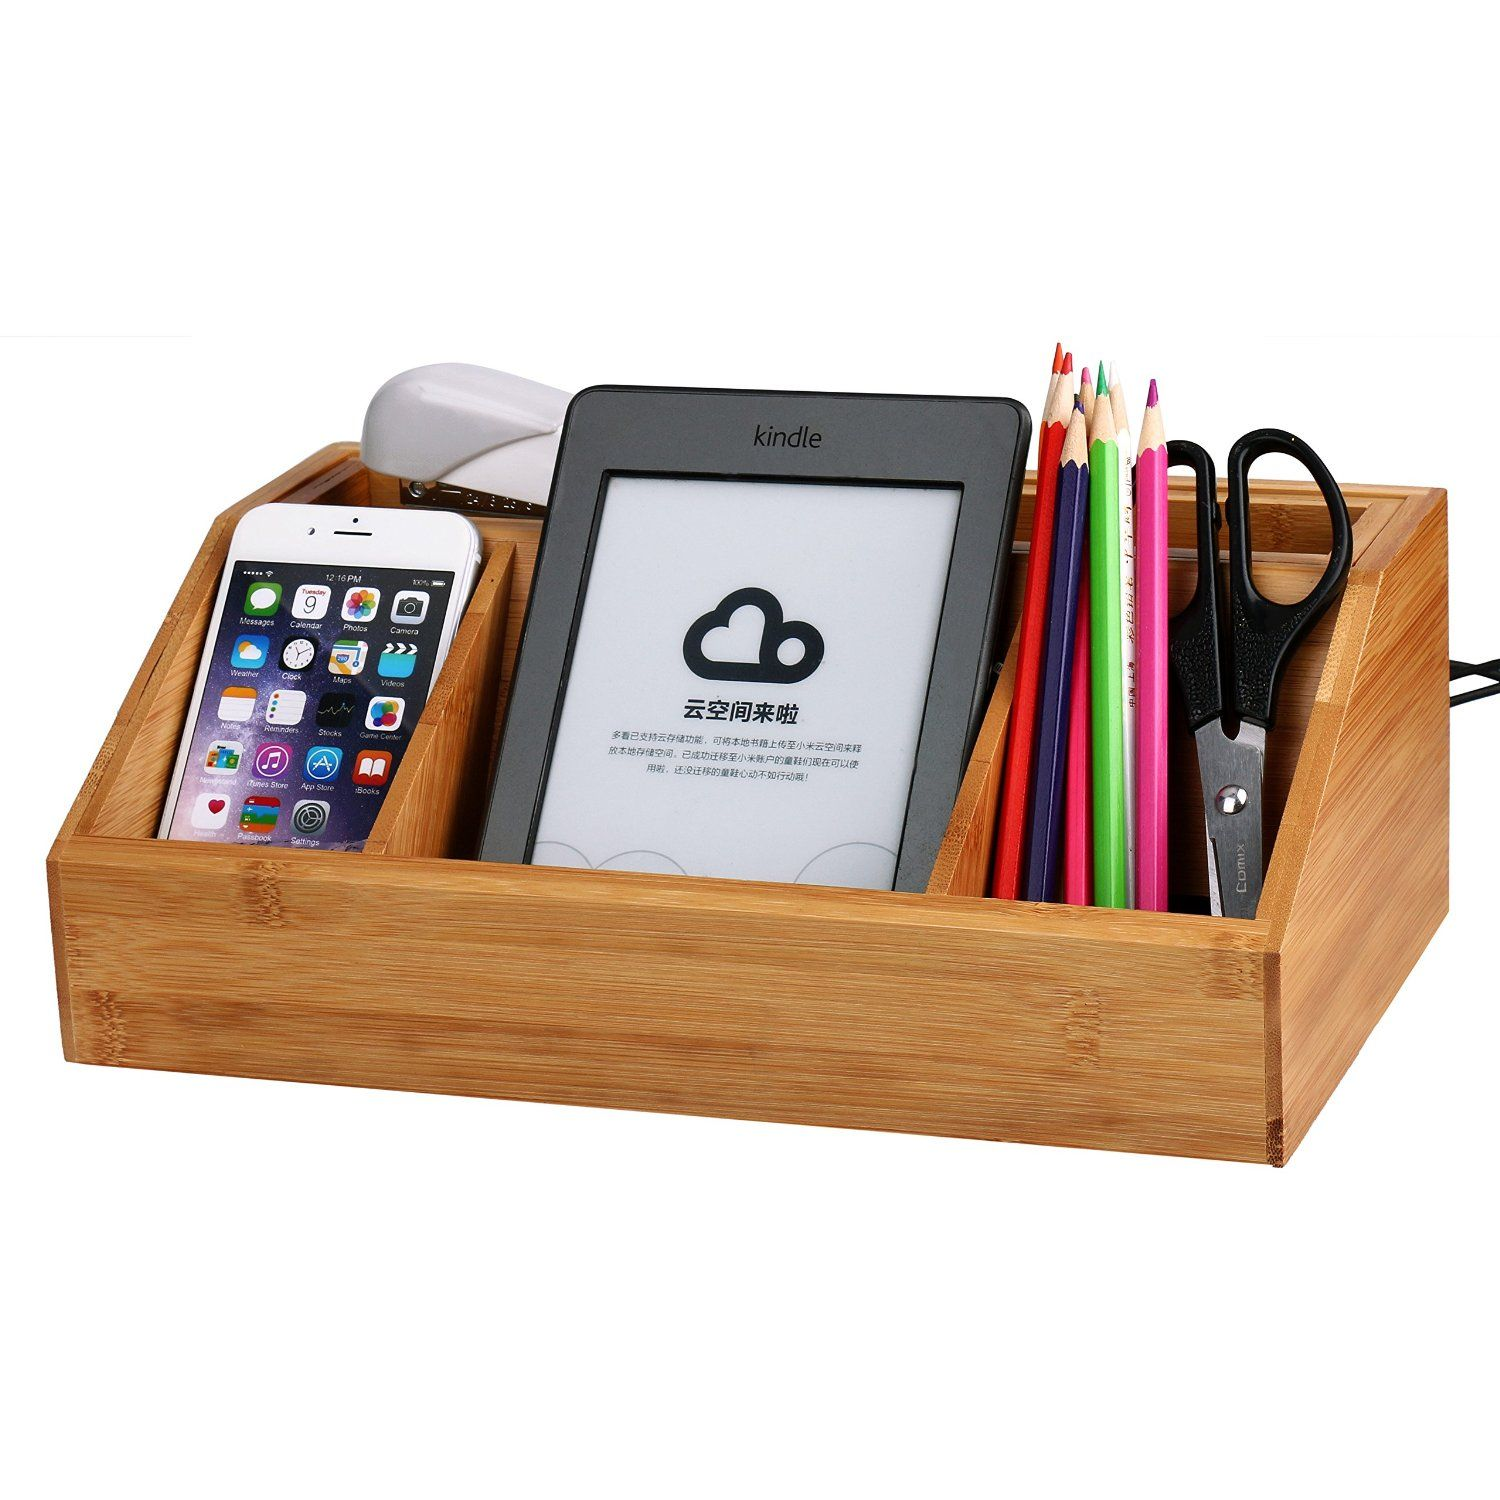 Desk Accessories & Organizer Shop For Cheap Office Desktop Decor Storage Box Leather Organizer Mail Notes Business Card Pen Pencil Remote Control Mobile Phone Holder Latest Technology